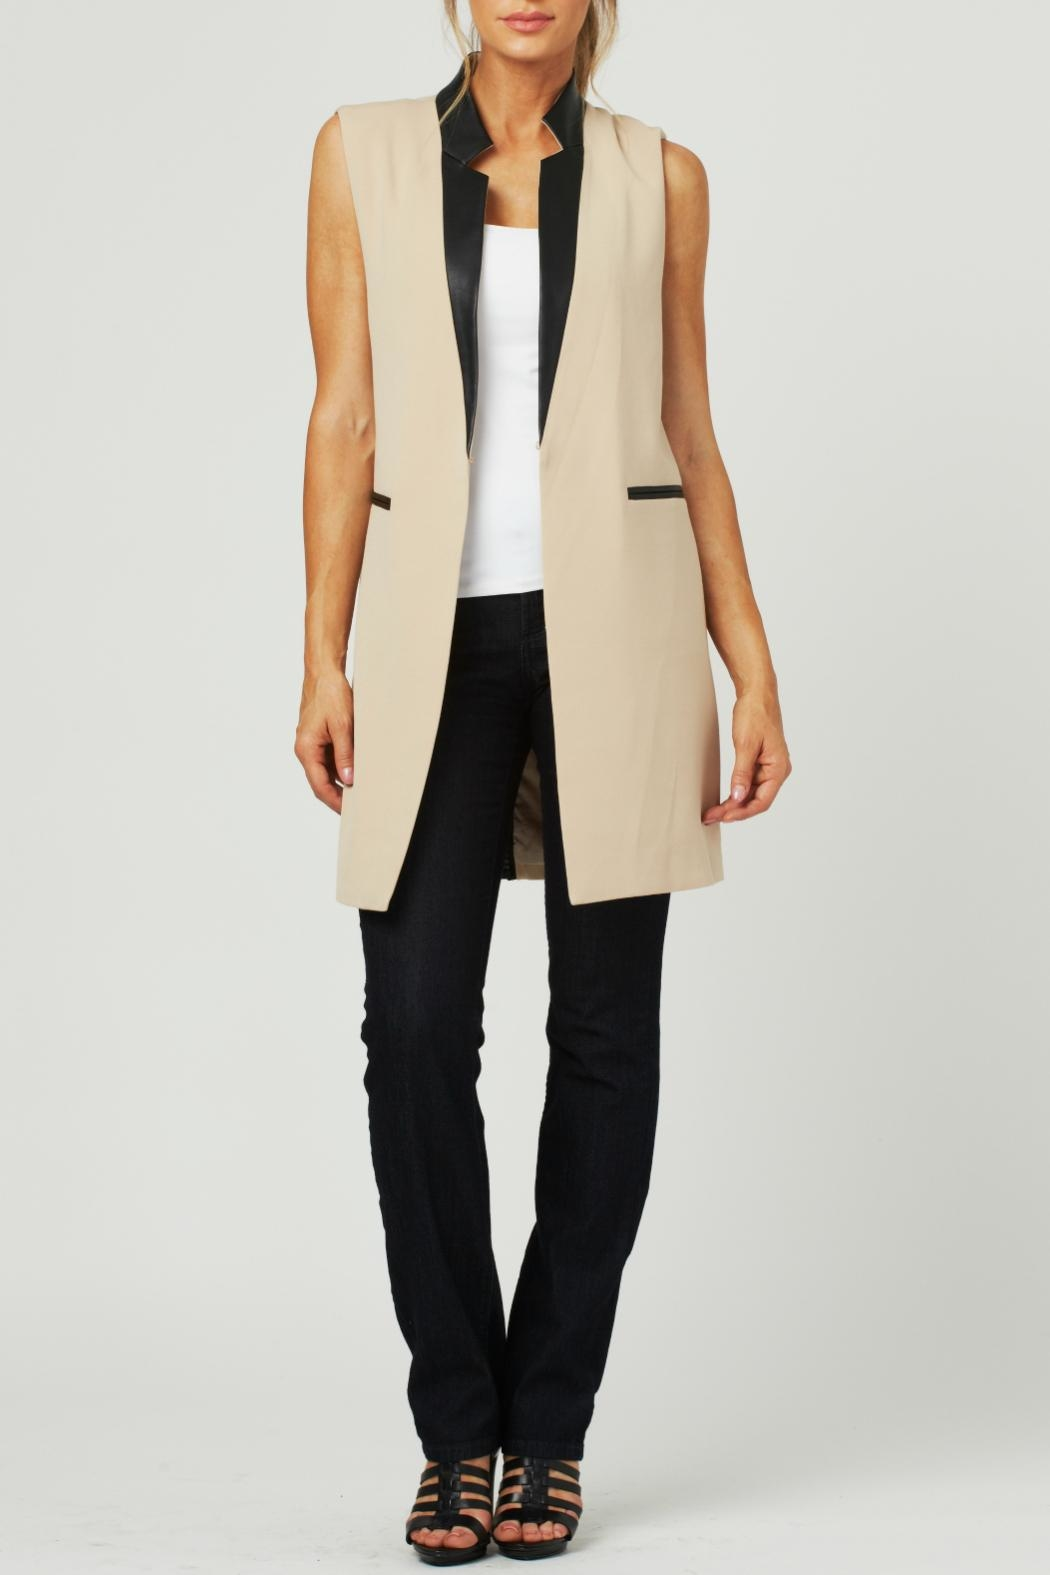 Luii Leather Trimmed Vest - Front Full Image